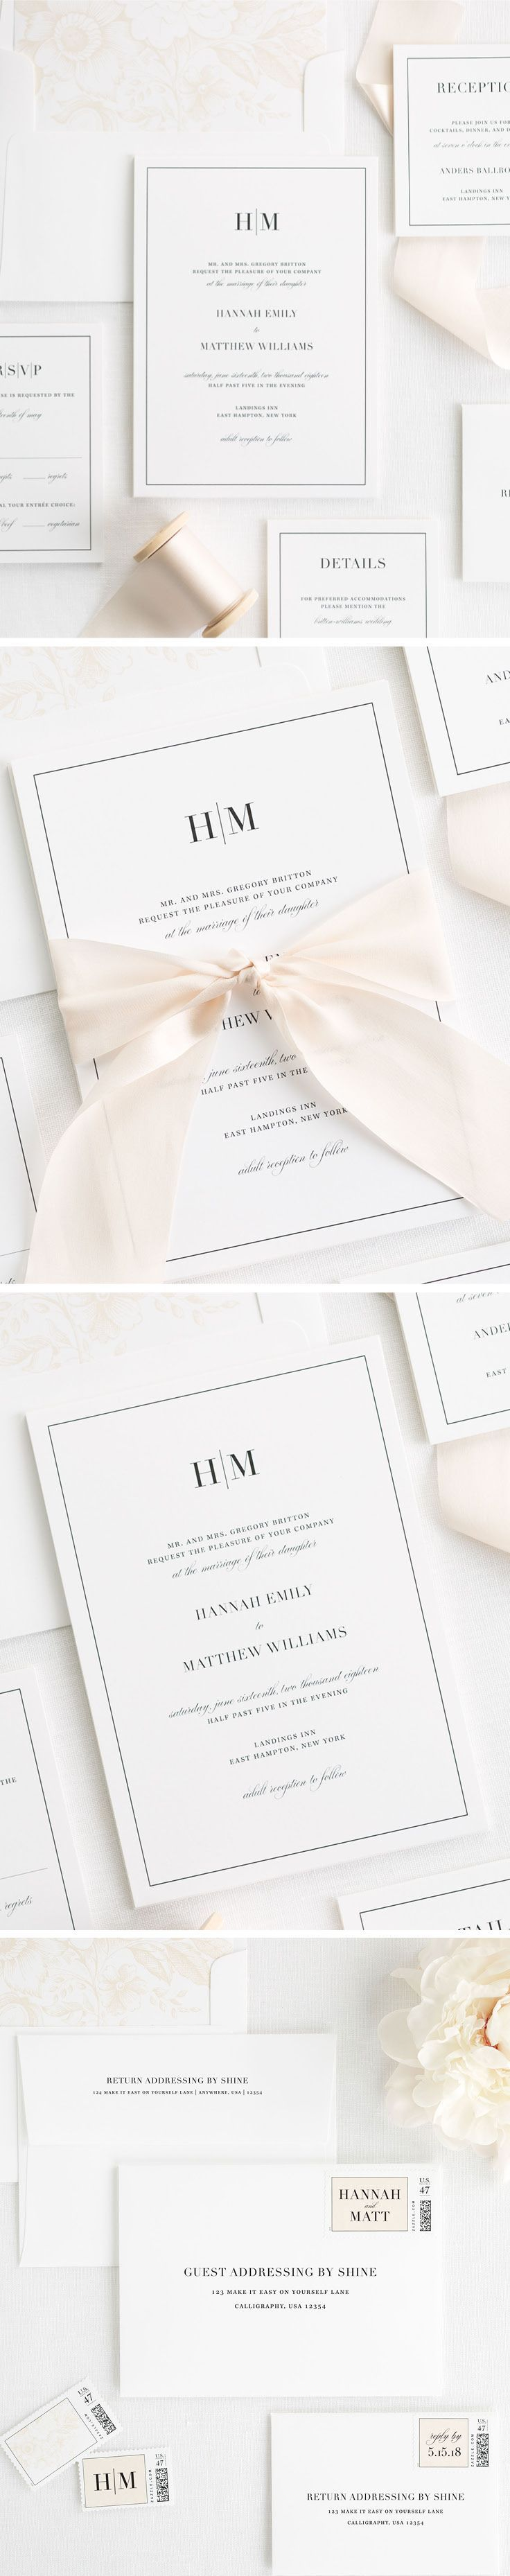 284 Best Cards Images On Pinterest Invitations Wedding Ideas And